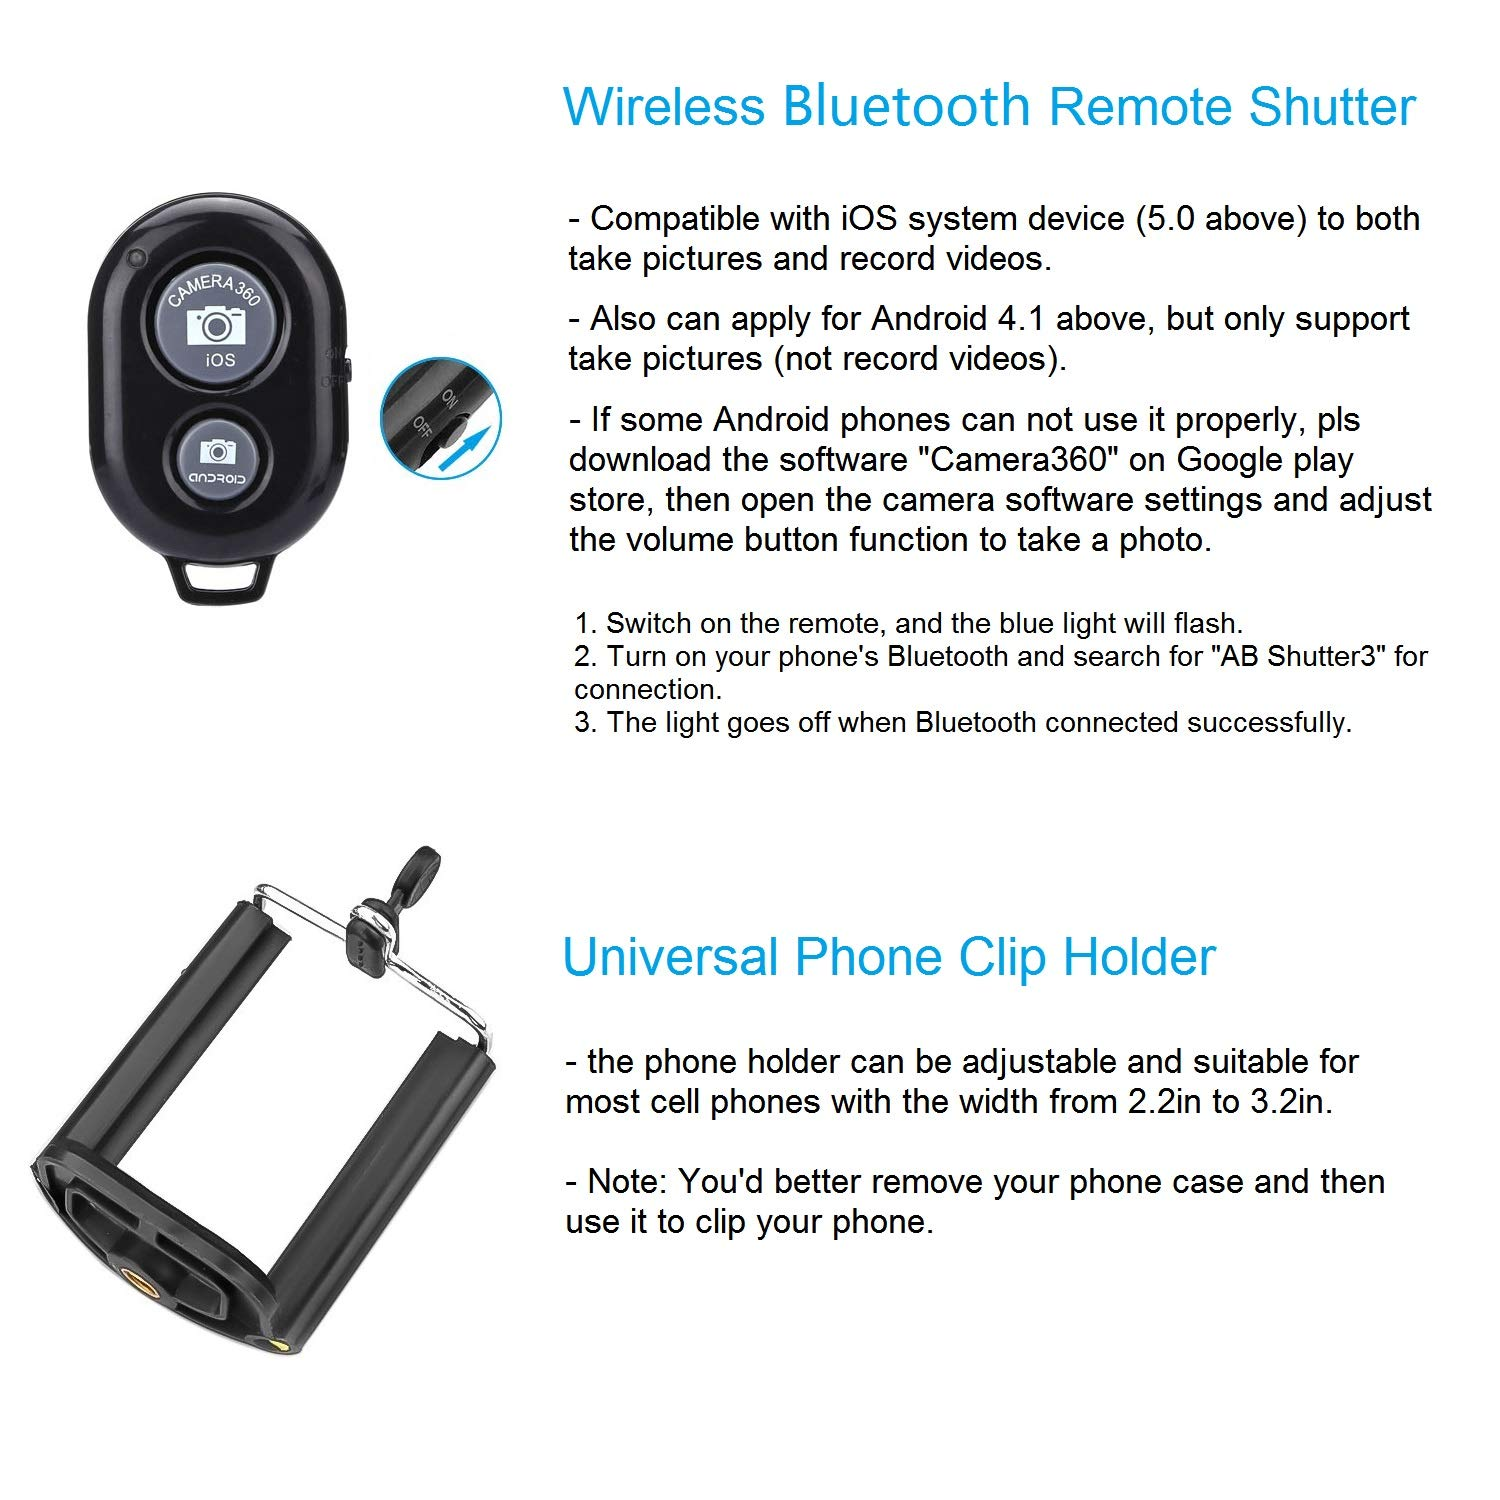 Camera / Phone Tripod, pangshi 10 Inch Flexible Camera Tripod For GoPro/Canon/Nikon/Sony DSLR Cam/Gopro Action Cam, Phone Tripod Stand with Cell Phone Holder Clip For iPhone/Android Phone(3 in 1)